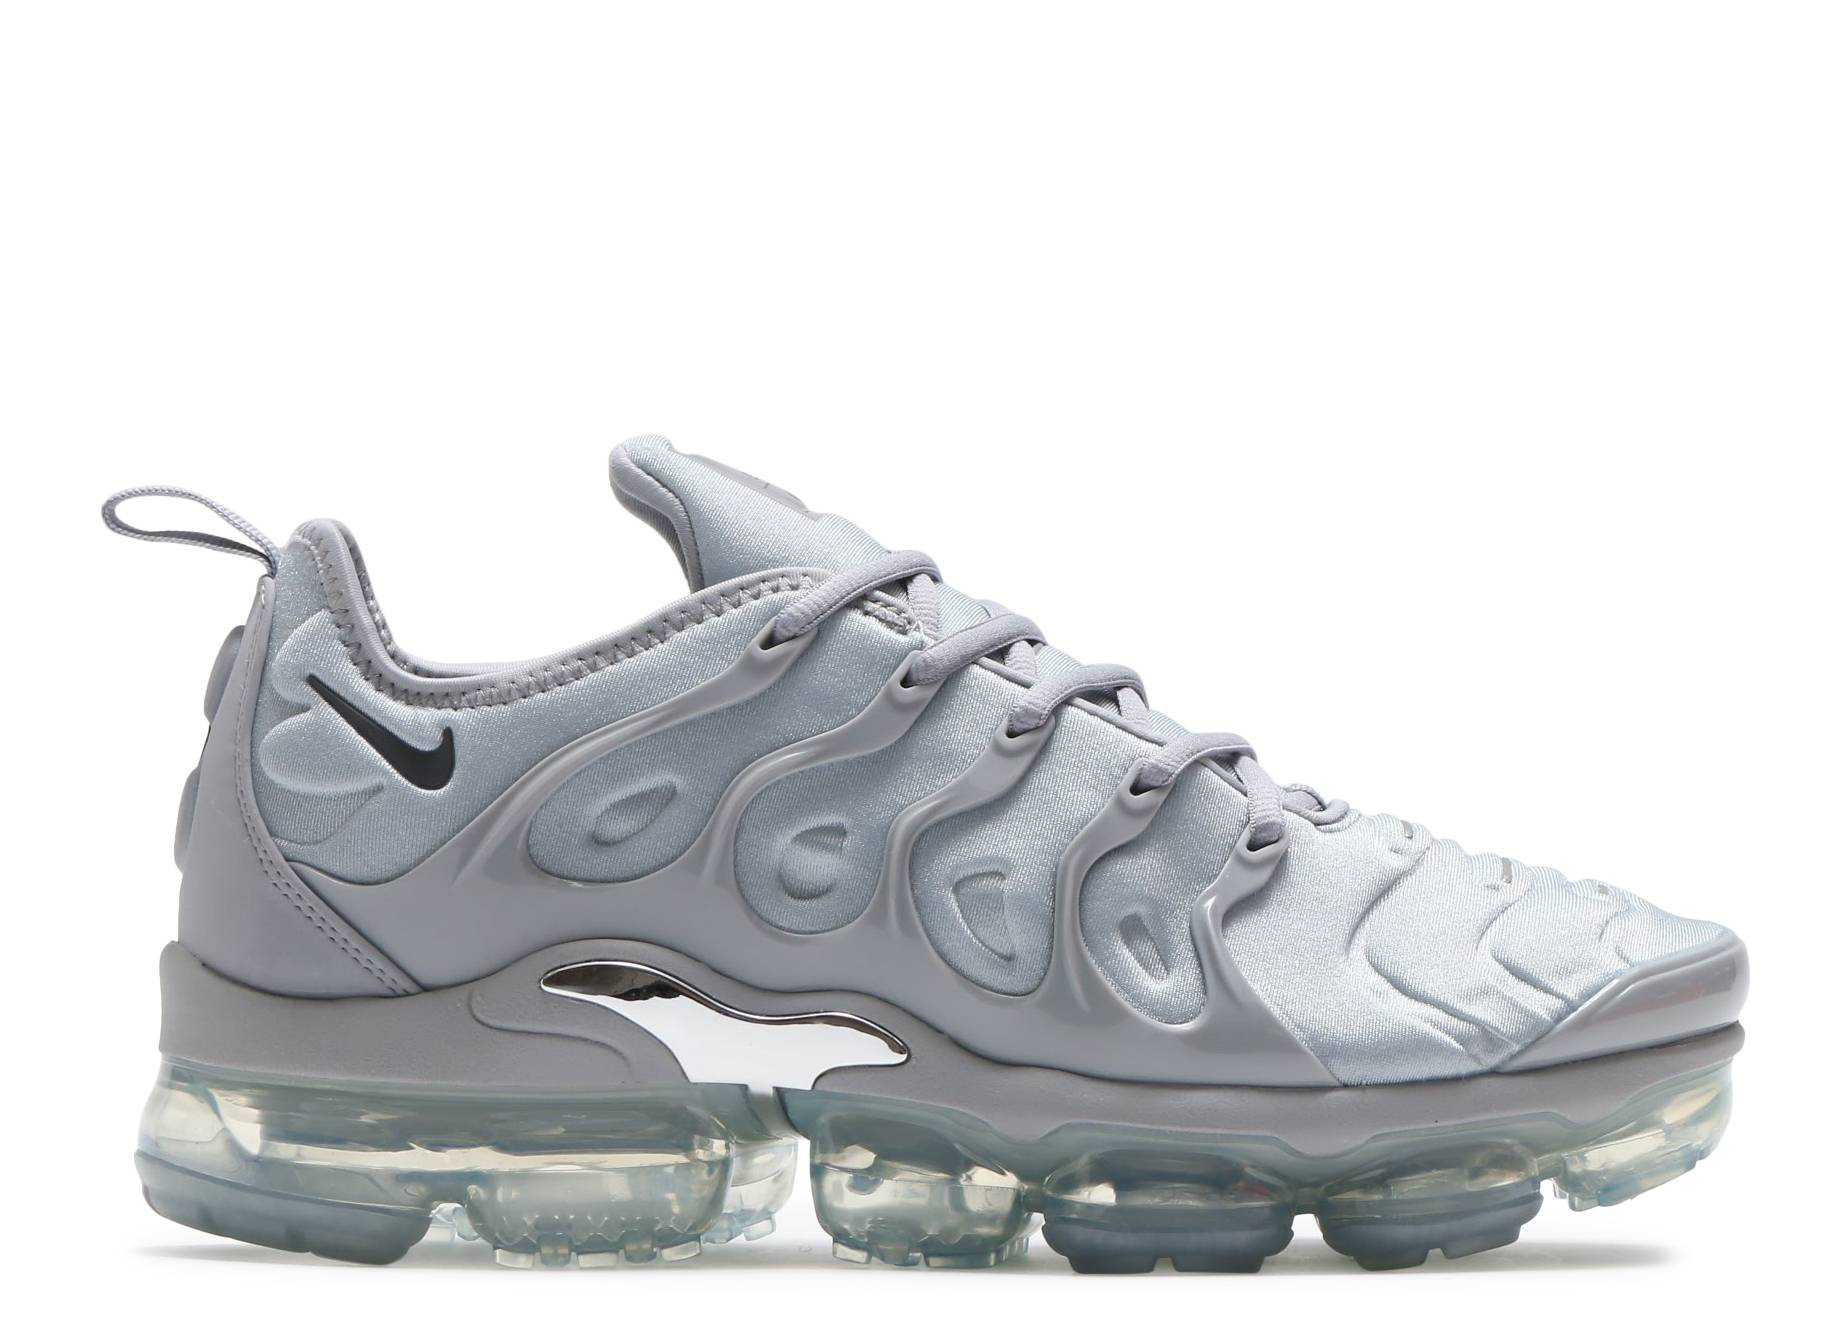 859f56279c1 AIR VAPORMAX PLUS - Nike - 924453 005 - wolf grey dark grey-metallic ...